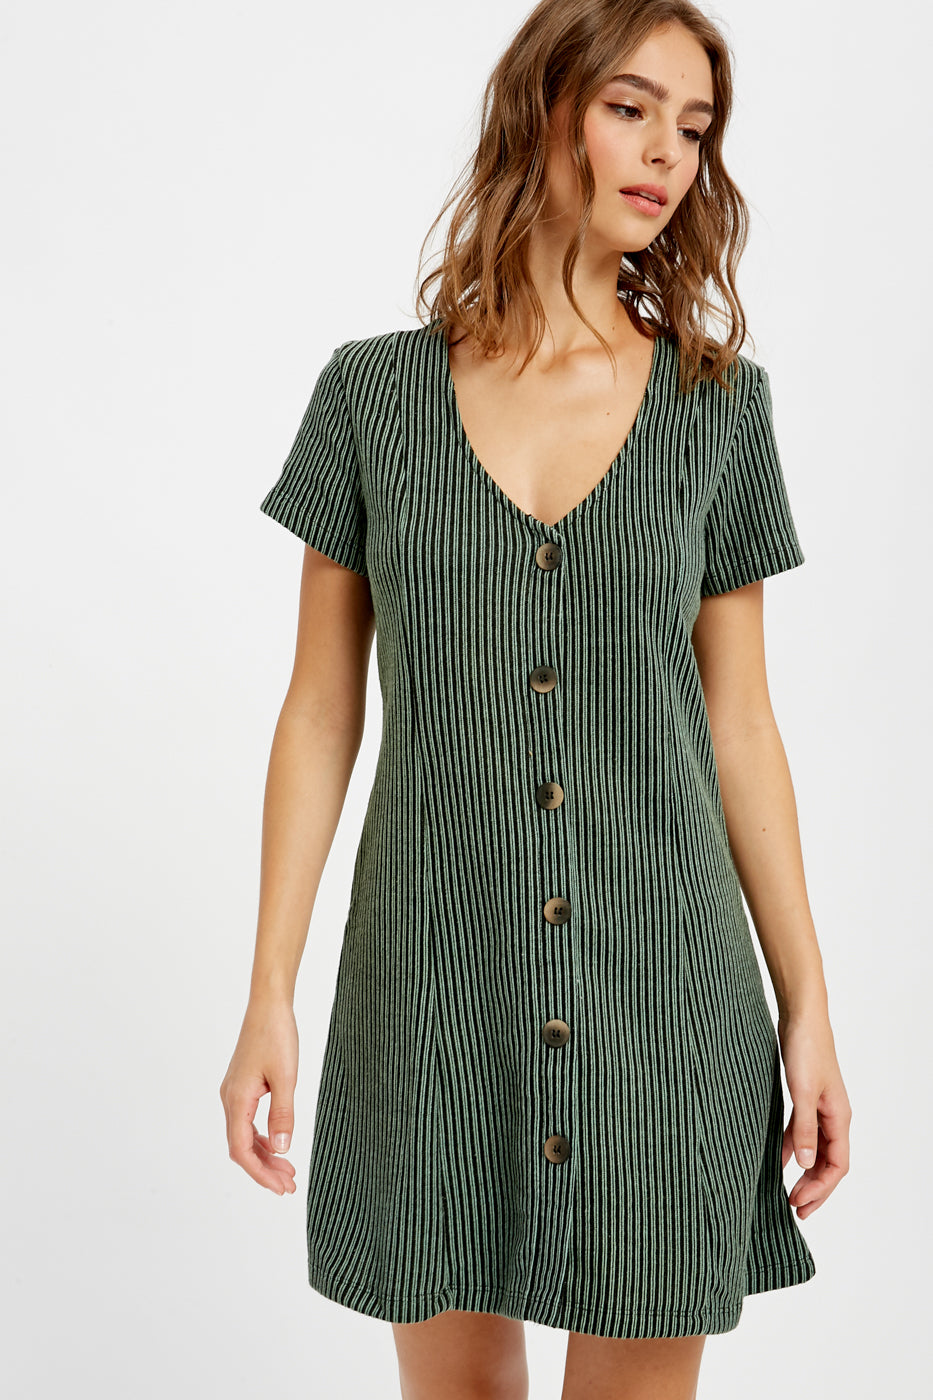 Striped Button Down Dress - Dalton Boutique